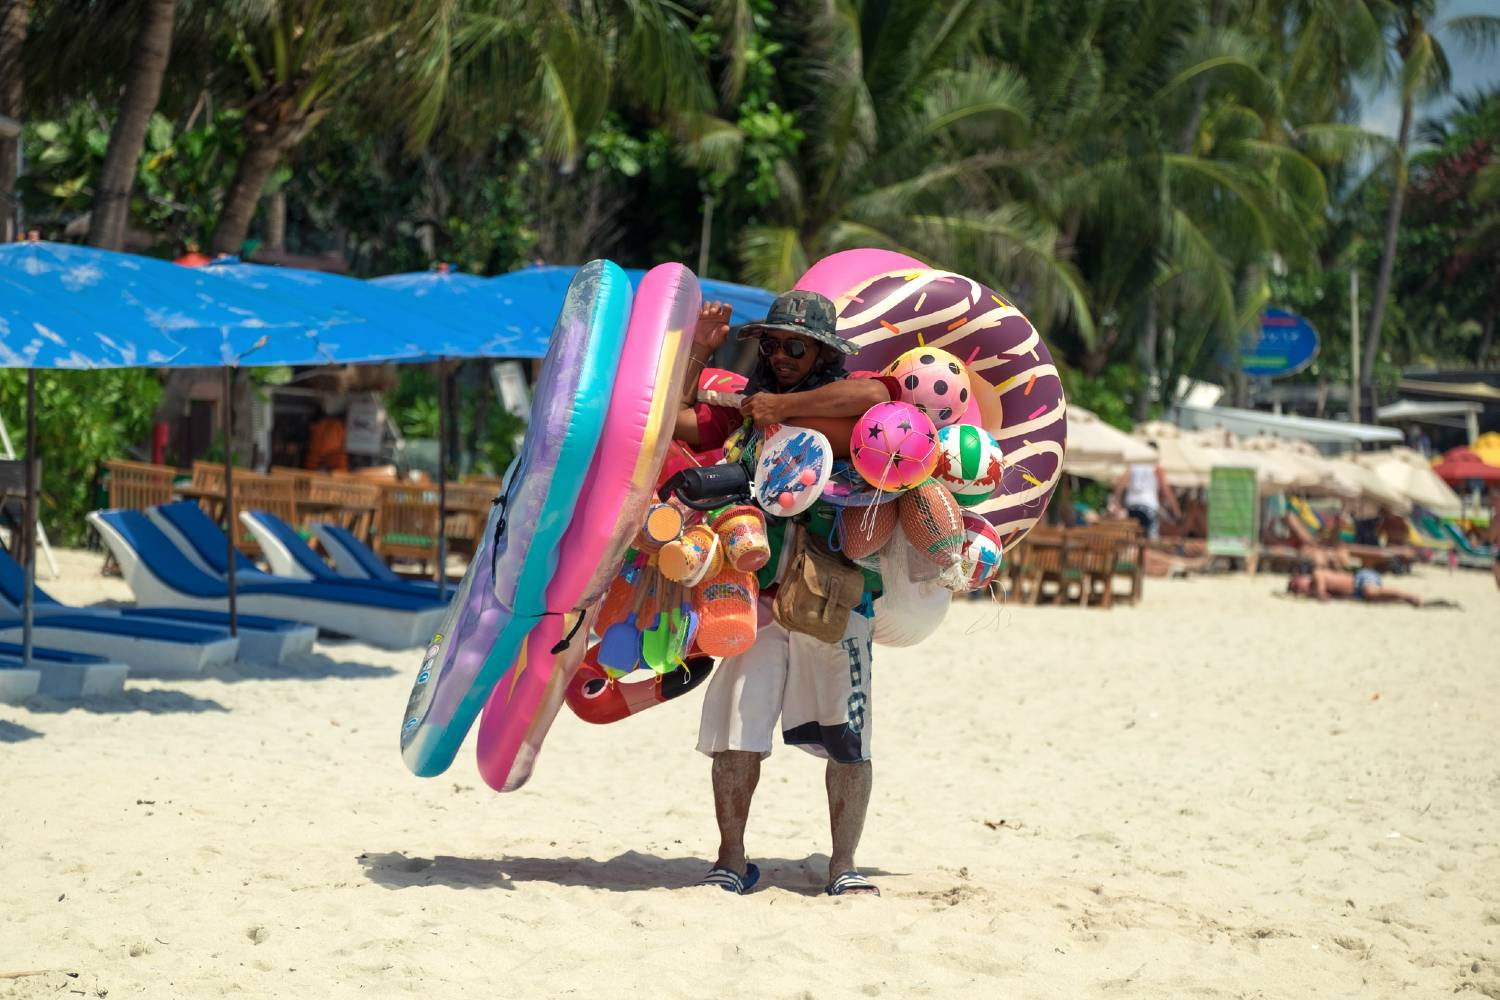 Vendor overloaded with swimming pools and air mattresses on Chaweng Beach